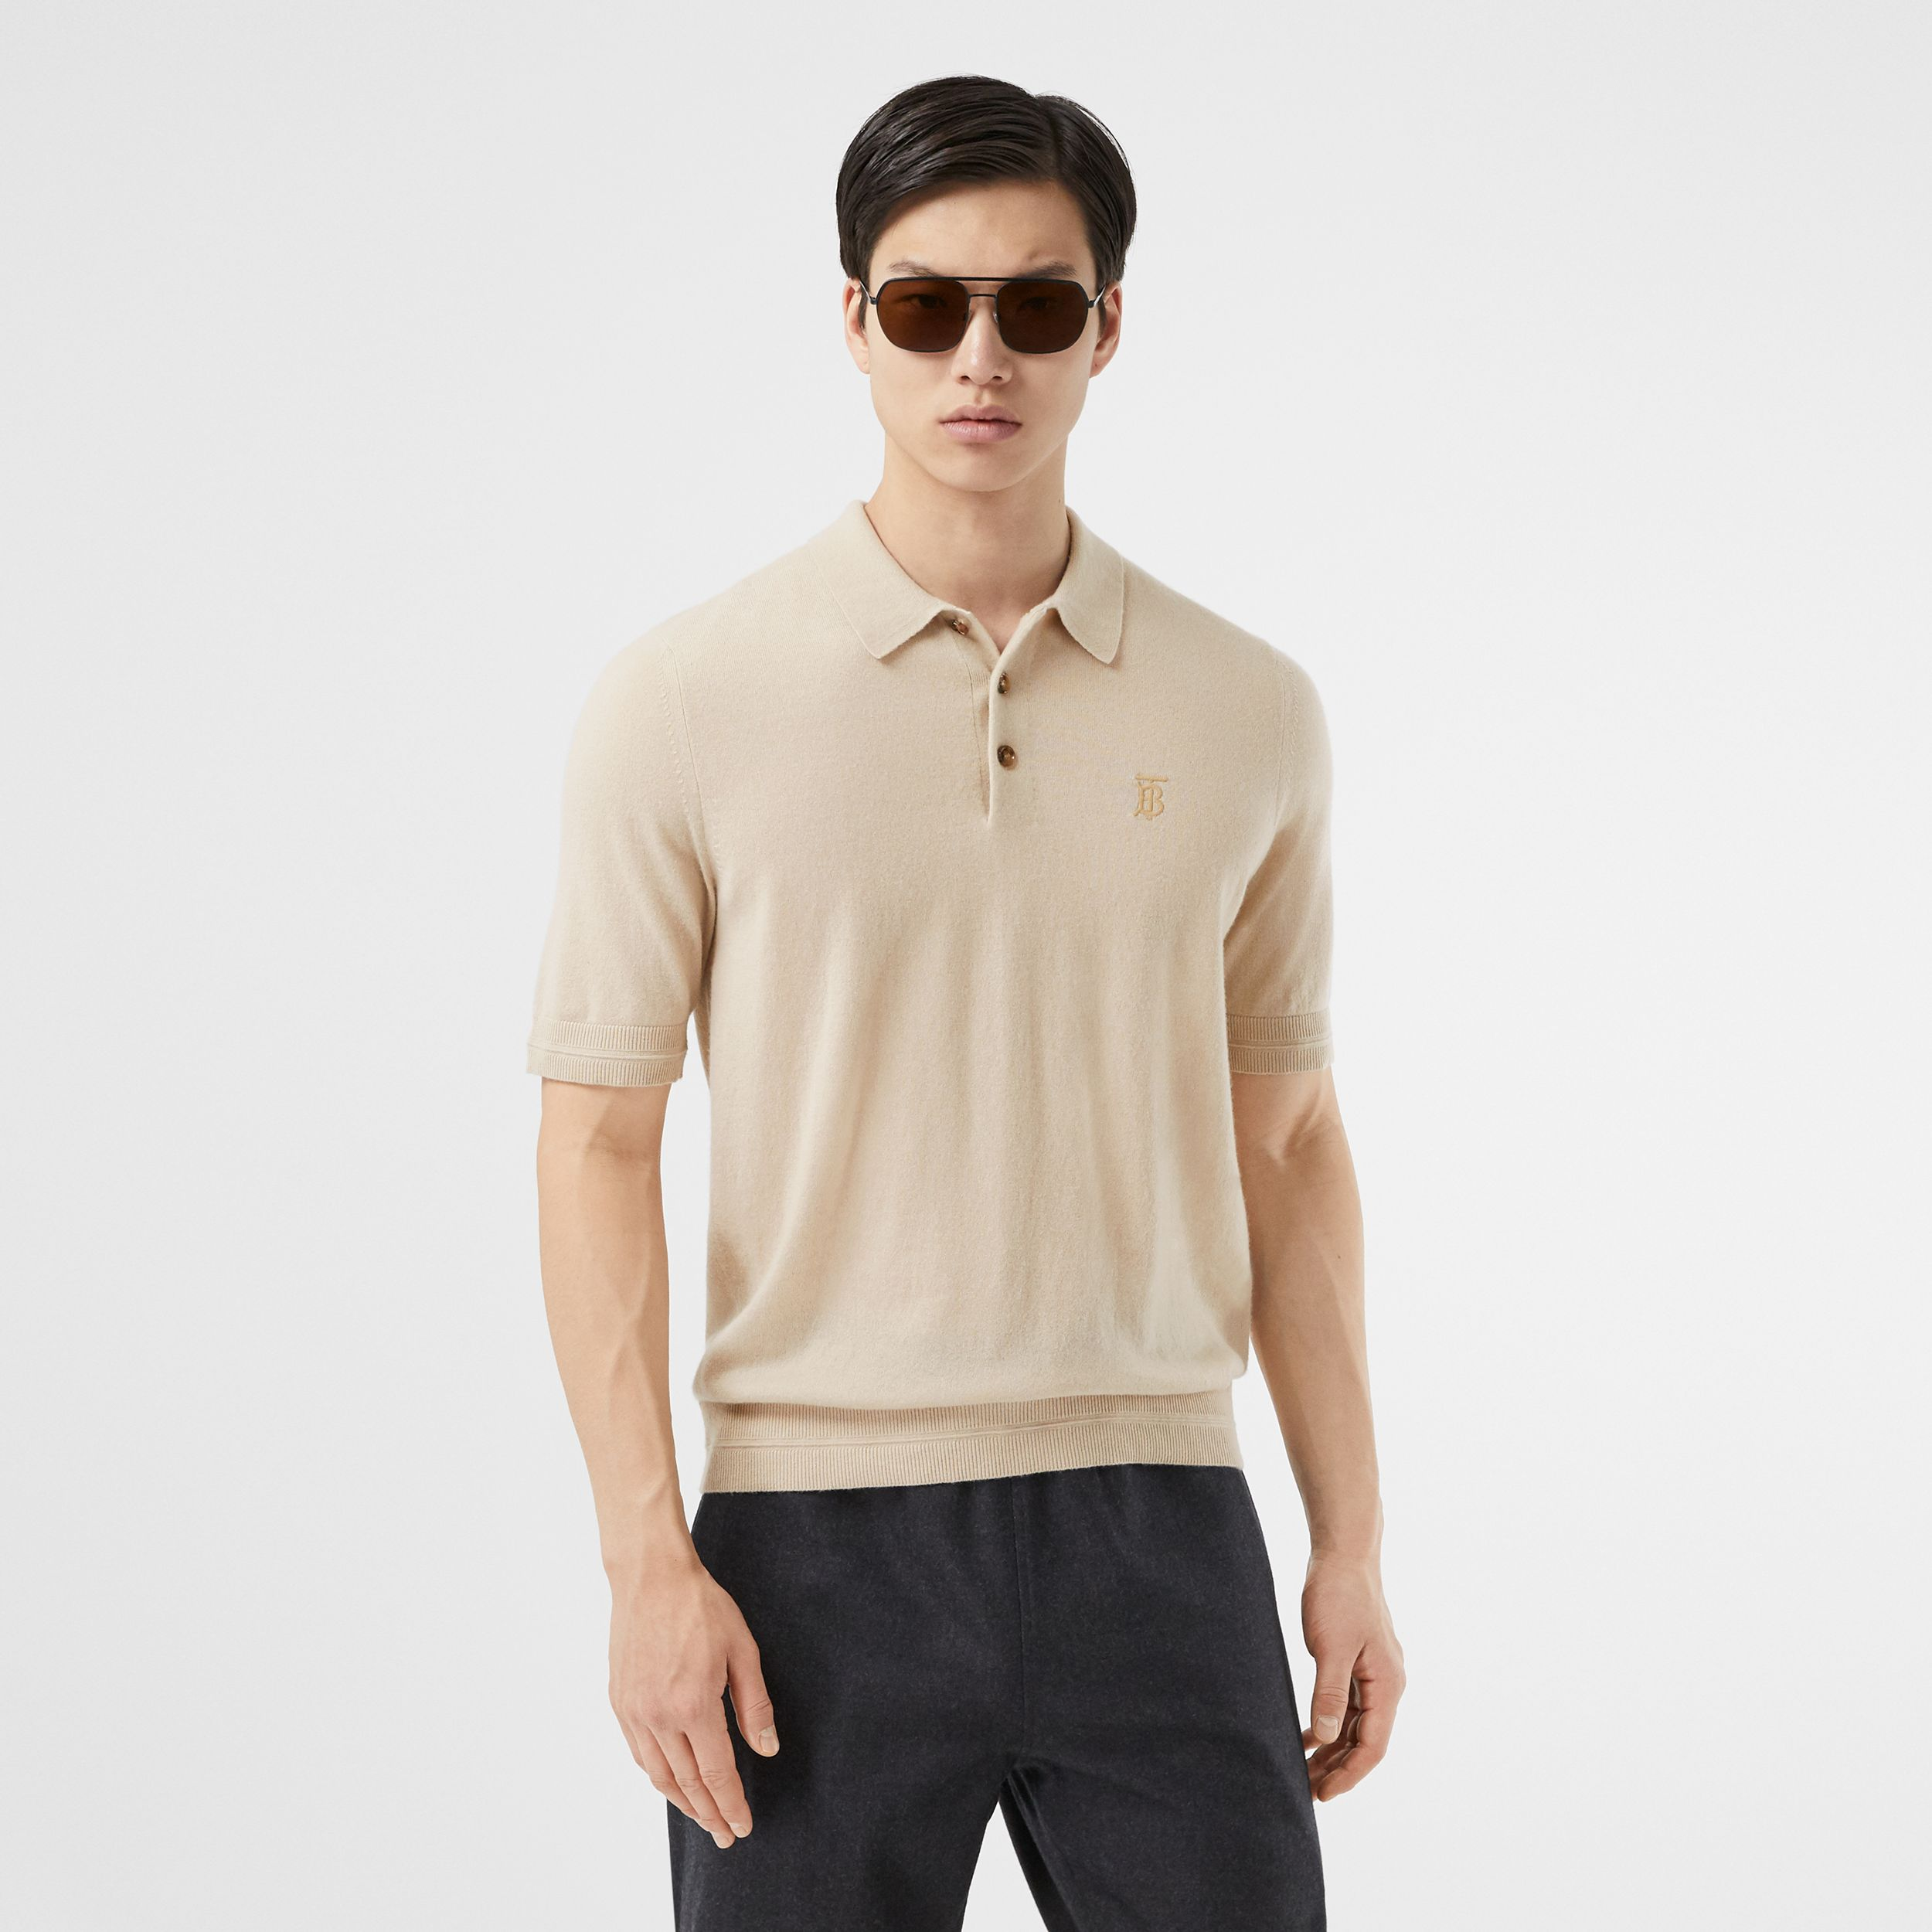 Monogram Motif Cashmere Polo Shirt in Soft Fawn - Men | Burberry United Kingdom - 1